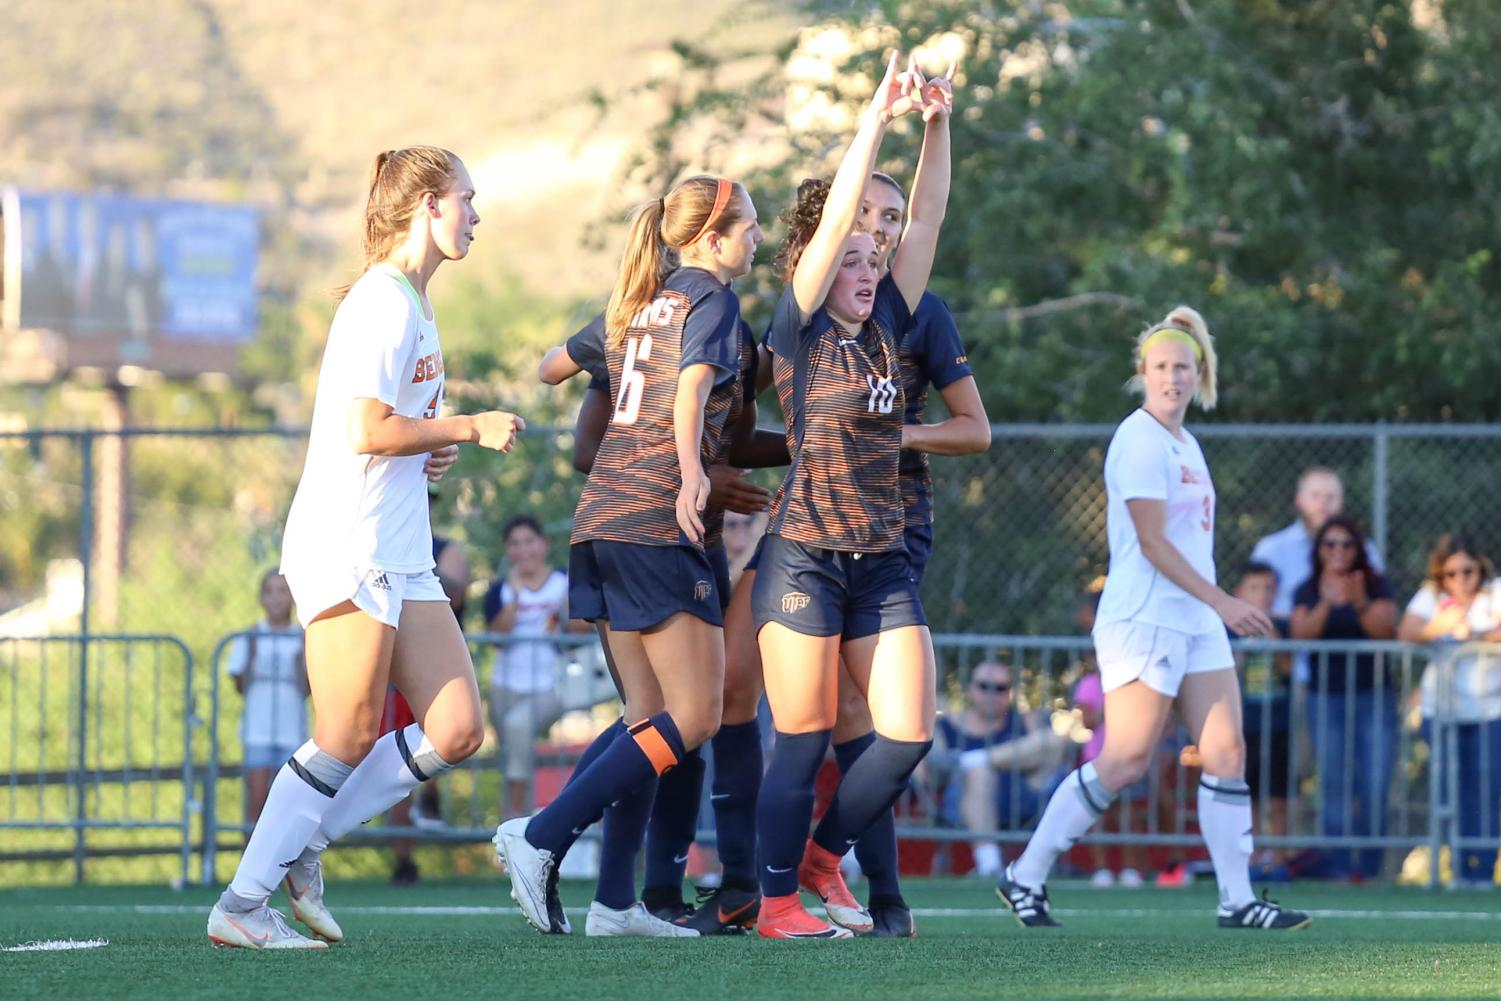 UTEP celebrates as they score the first goal of the day against Idaho State.